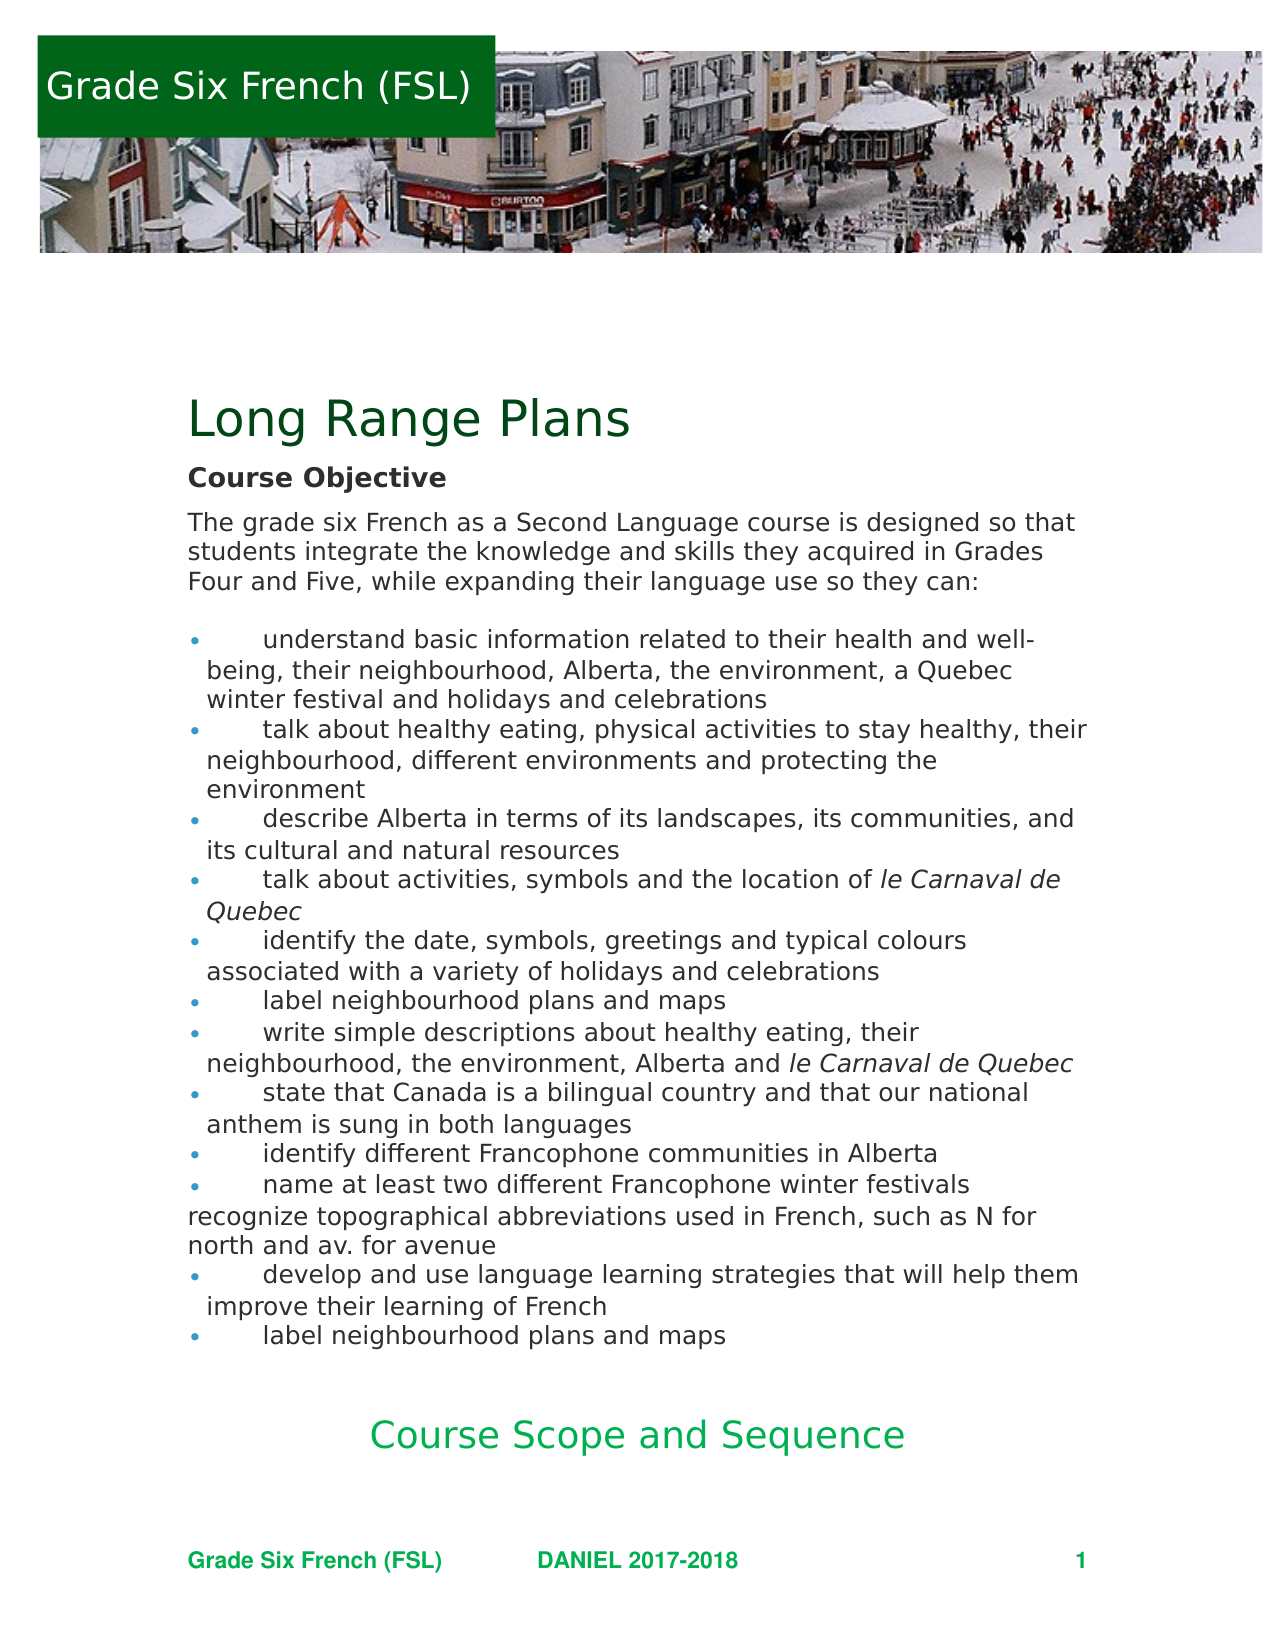 FSL 6 Long Range Plans Resource Preview